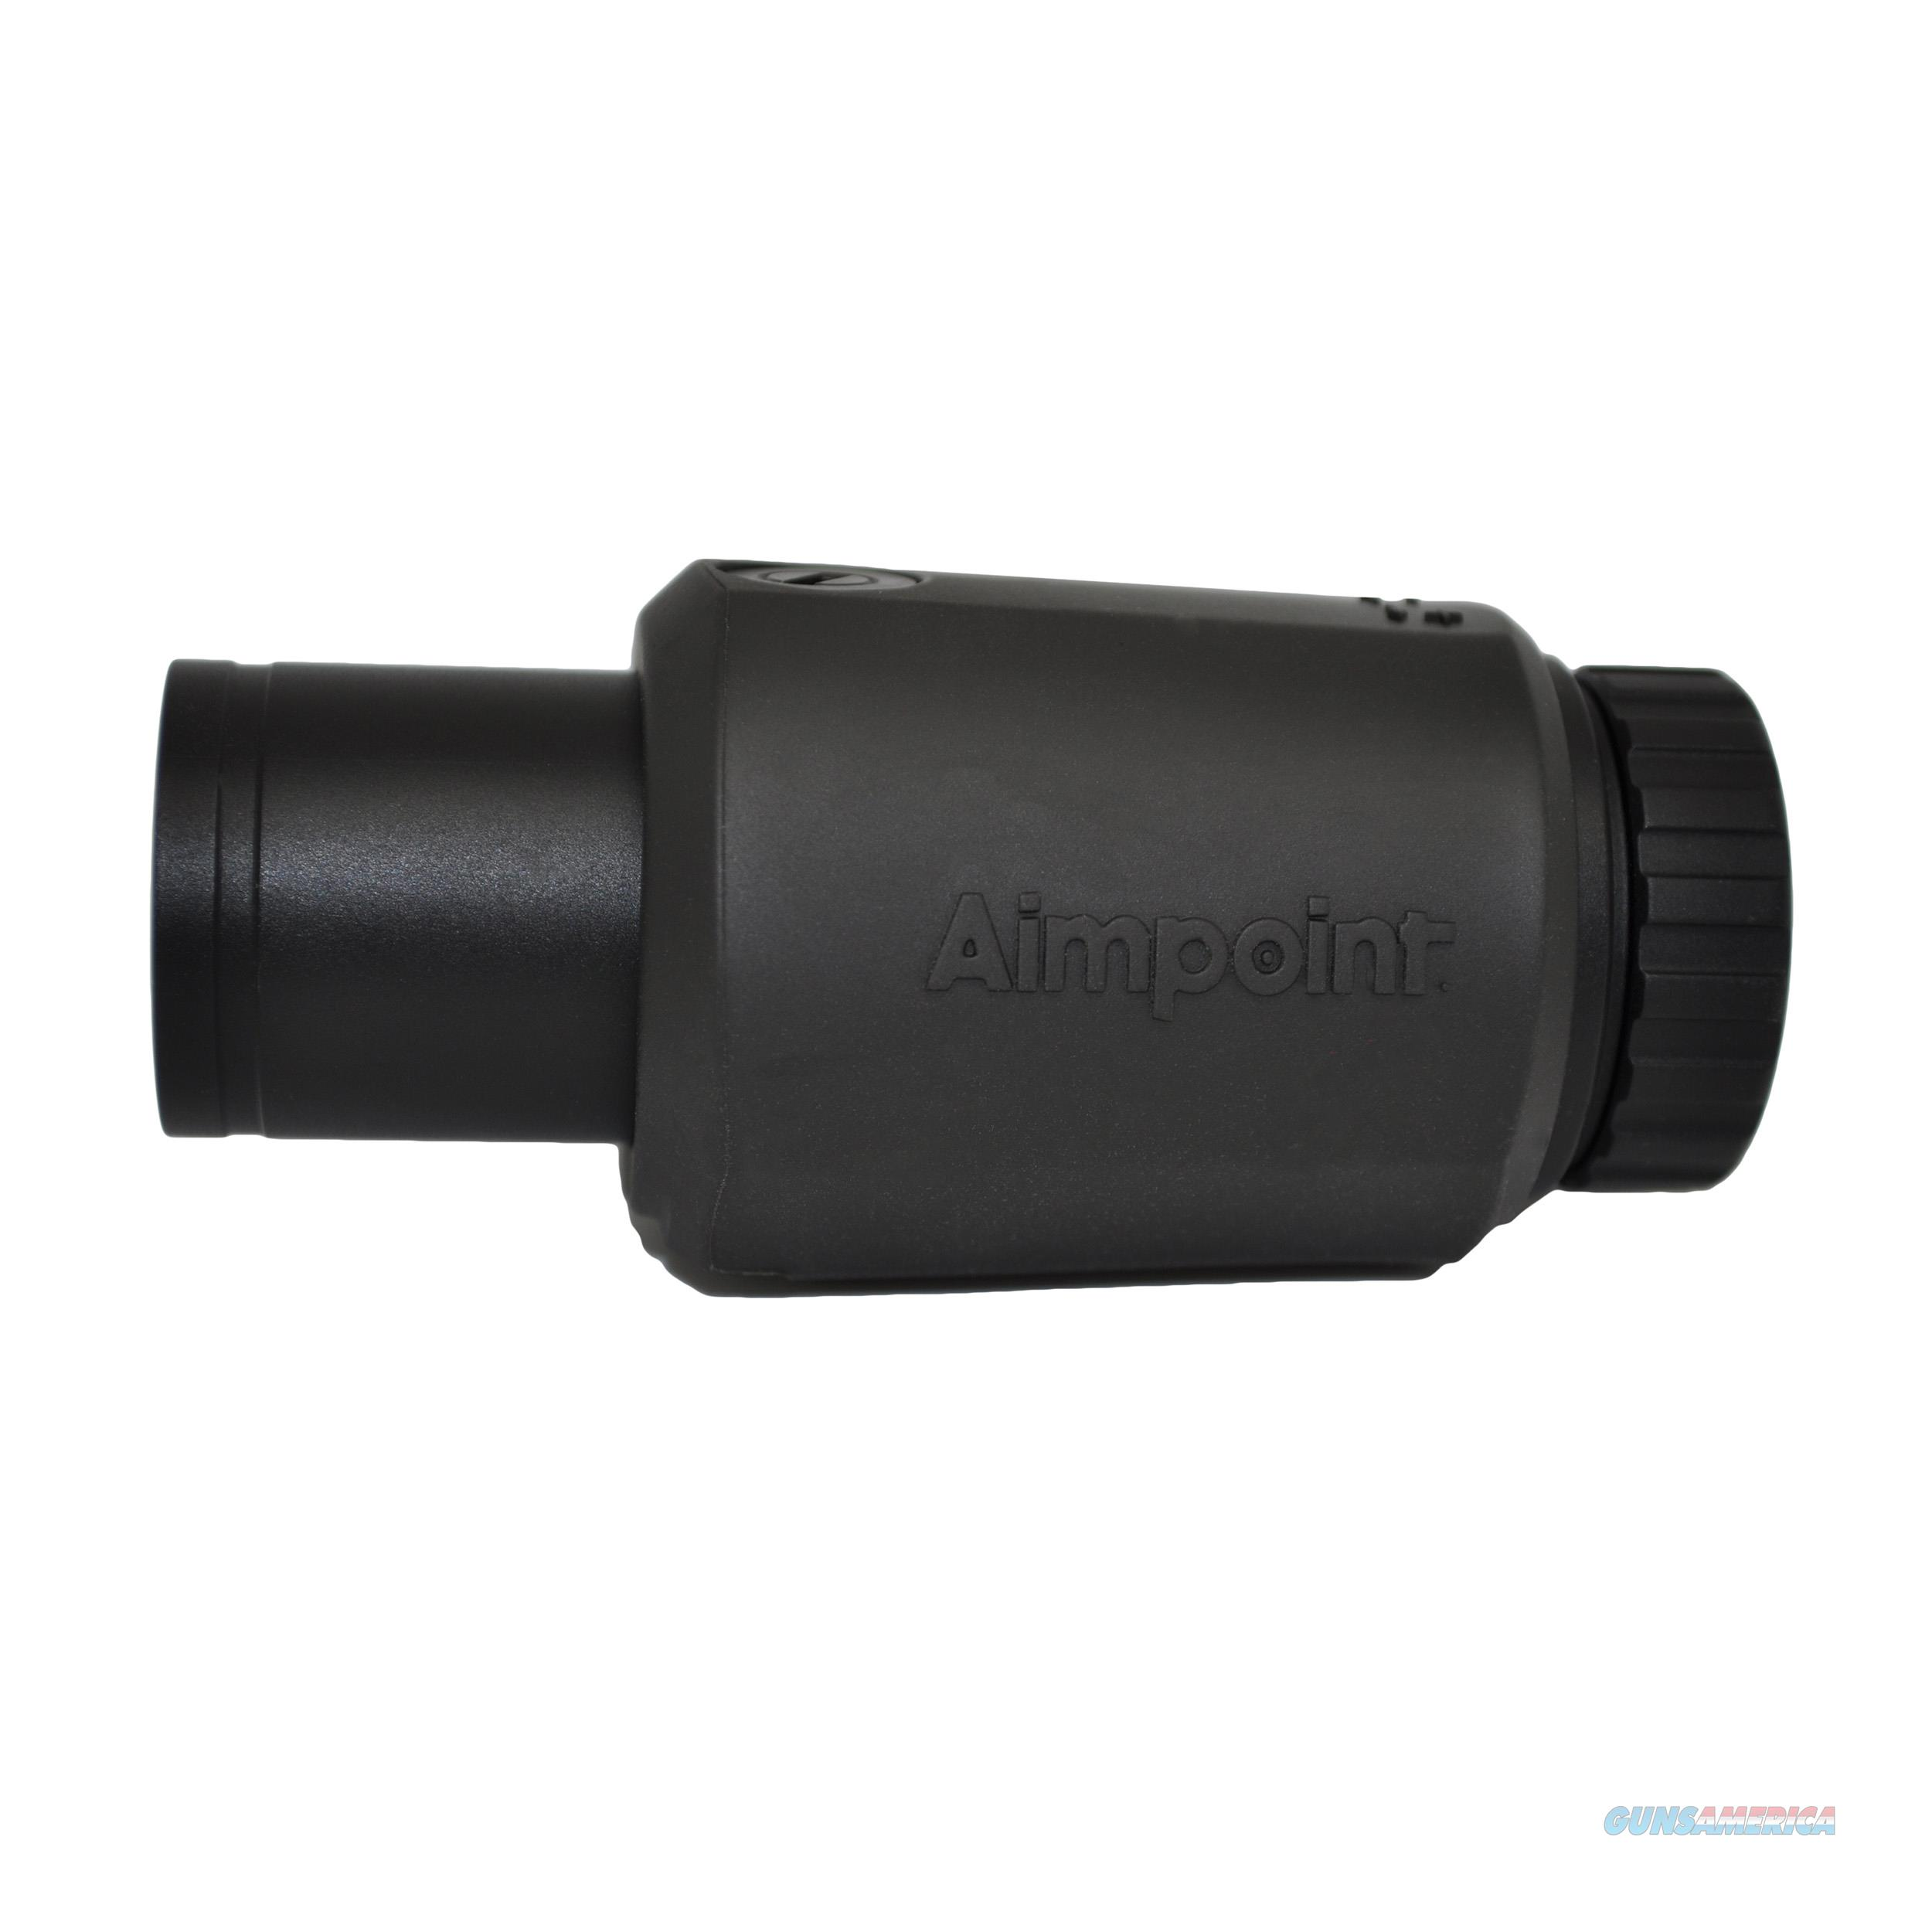 Aimpoint 3X-C Mag Commrcial Magnifier (3X) No Mount 200273  Non-Guns > Iron/Metal/Peep Sights